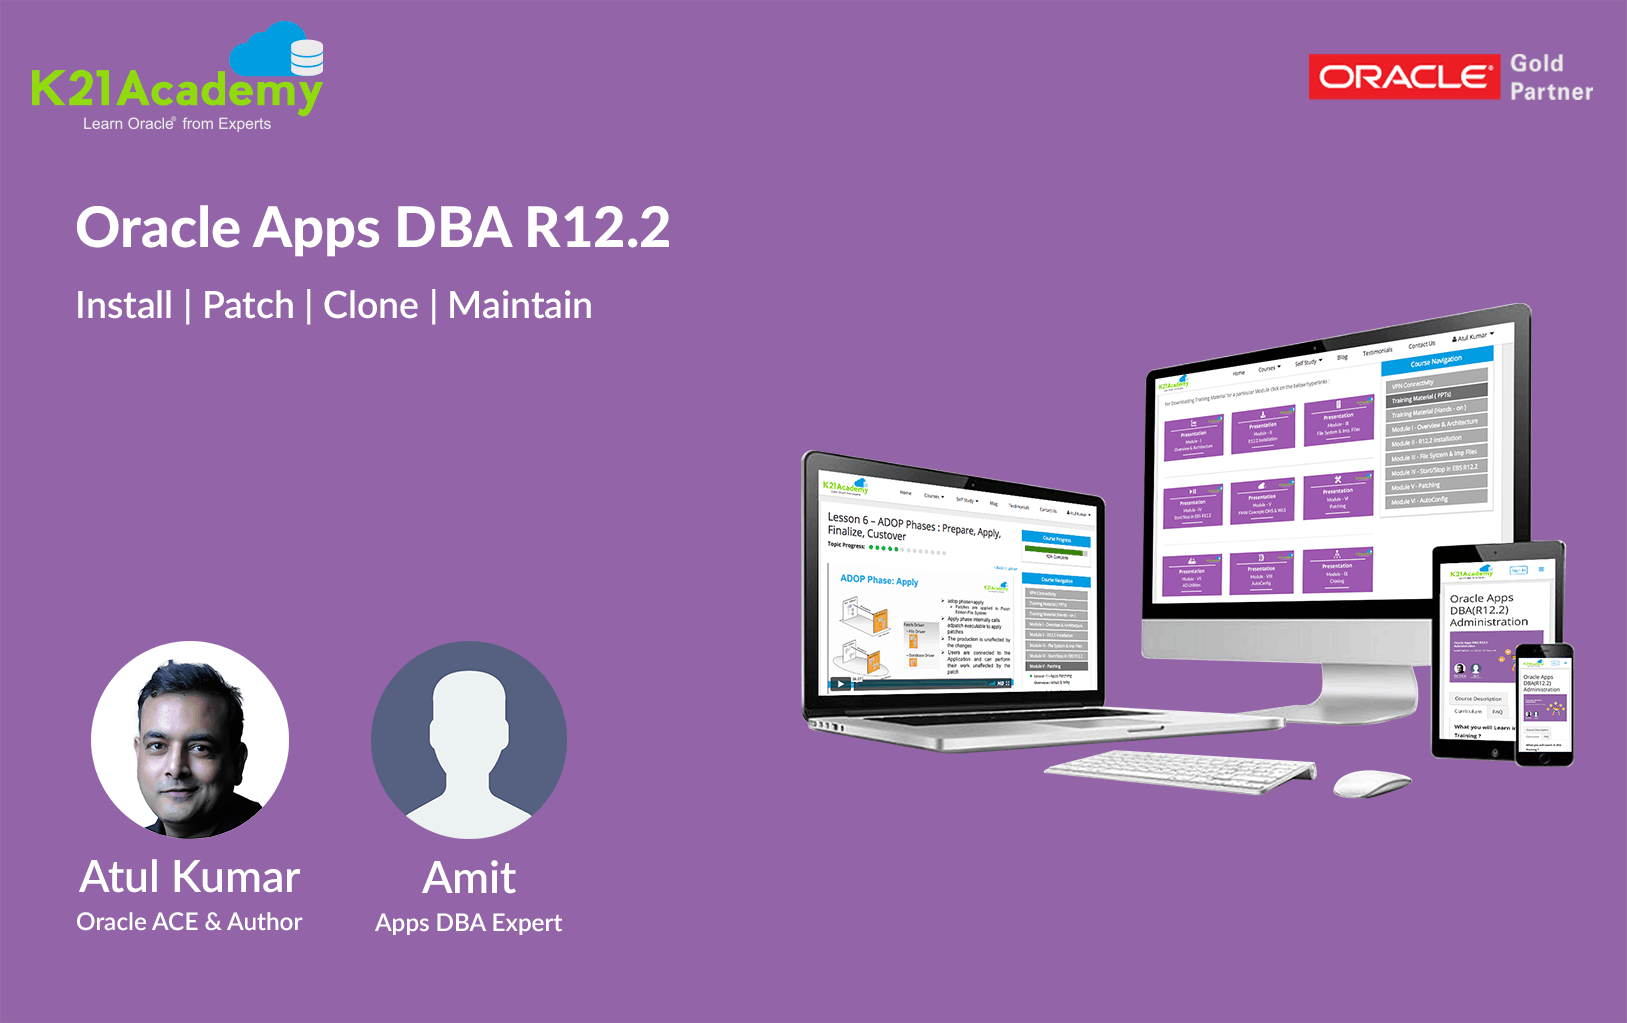 Oracle Apps Dba (r122) Install  Patch  Clone. Visual Merchandiser Job Description Resume. Resume For Graduate School Application. Sample Job Application Resume. How To Name My Resume. Objective For A Resume. Resume For Teens With No Experience. Best Resume Australia. Instructor Resume